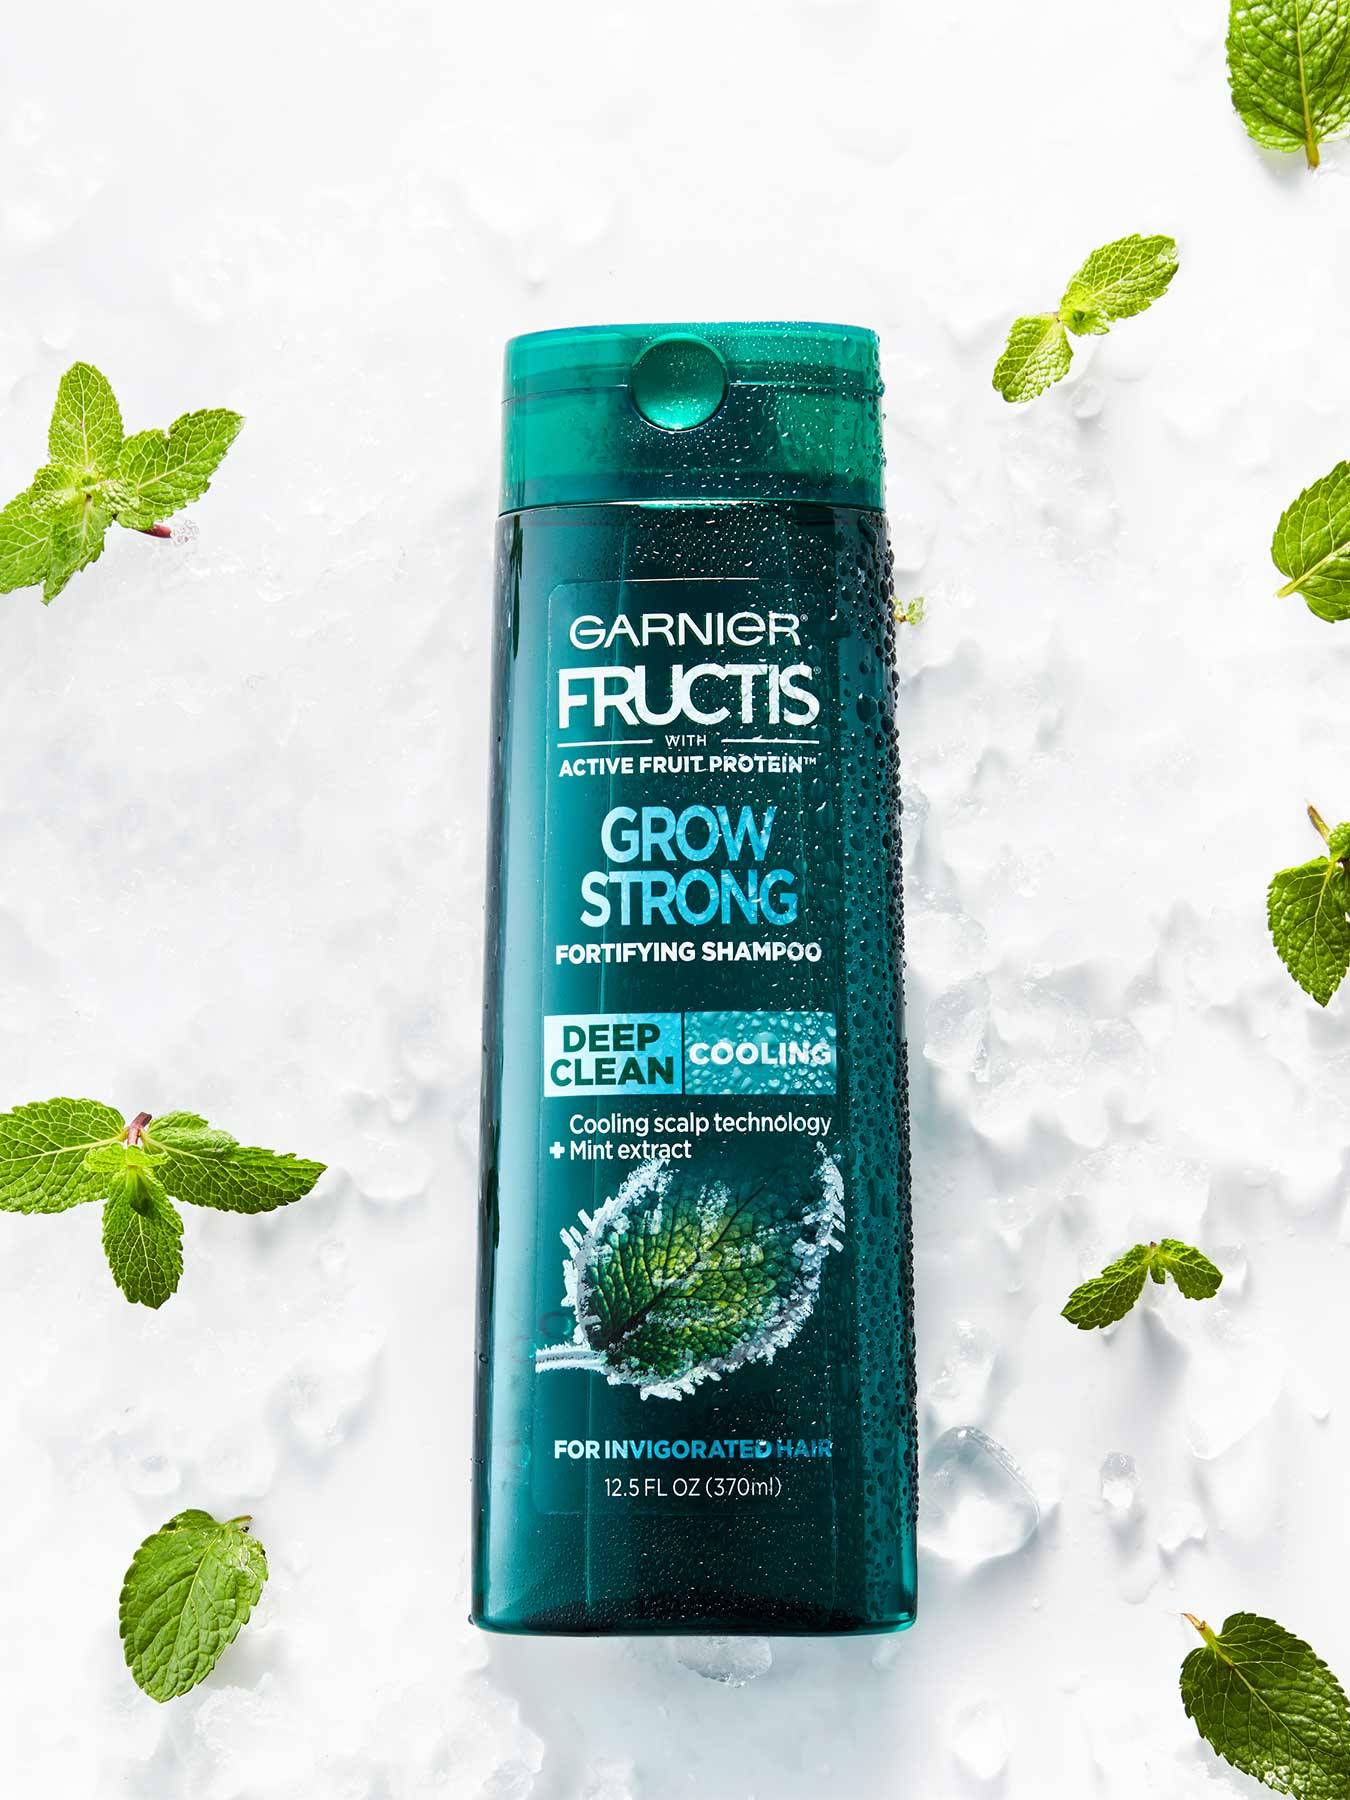 Cooling Deep Clean Shampoo for Men for Invigorated Hair on a bed of ice with mint leaves.